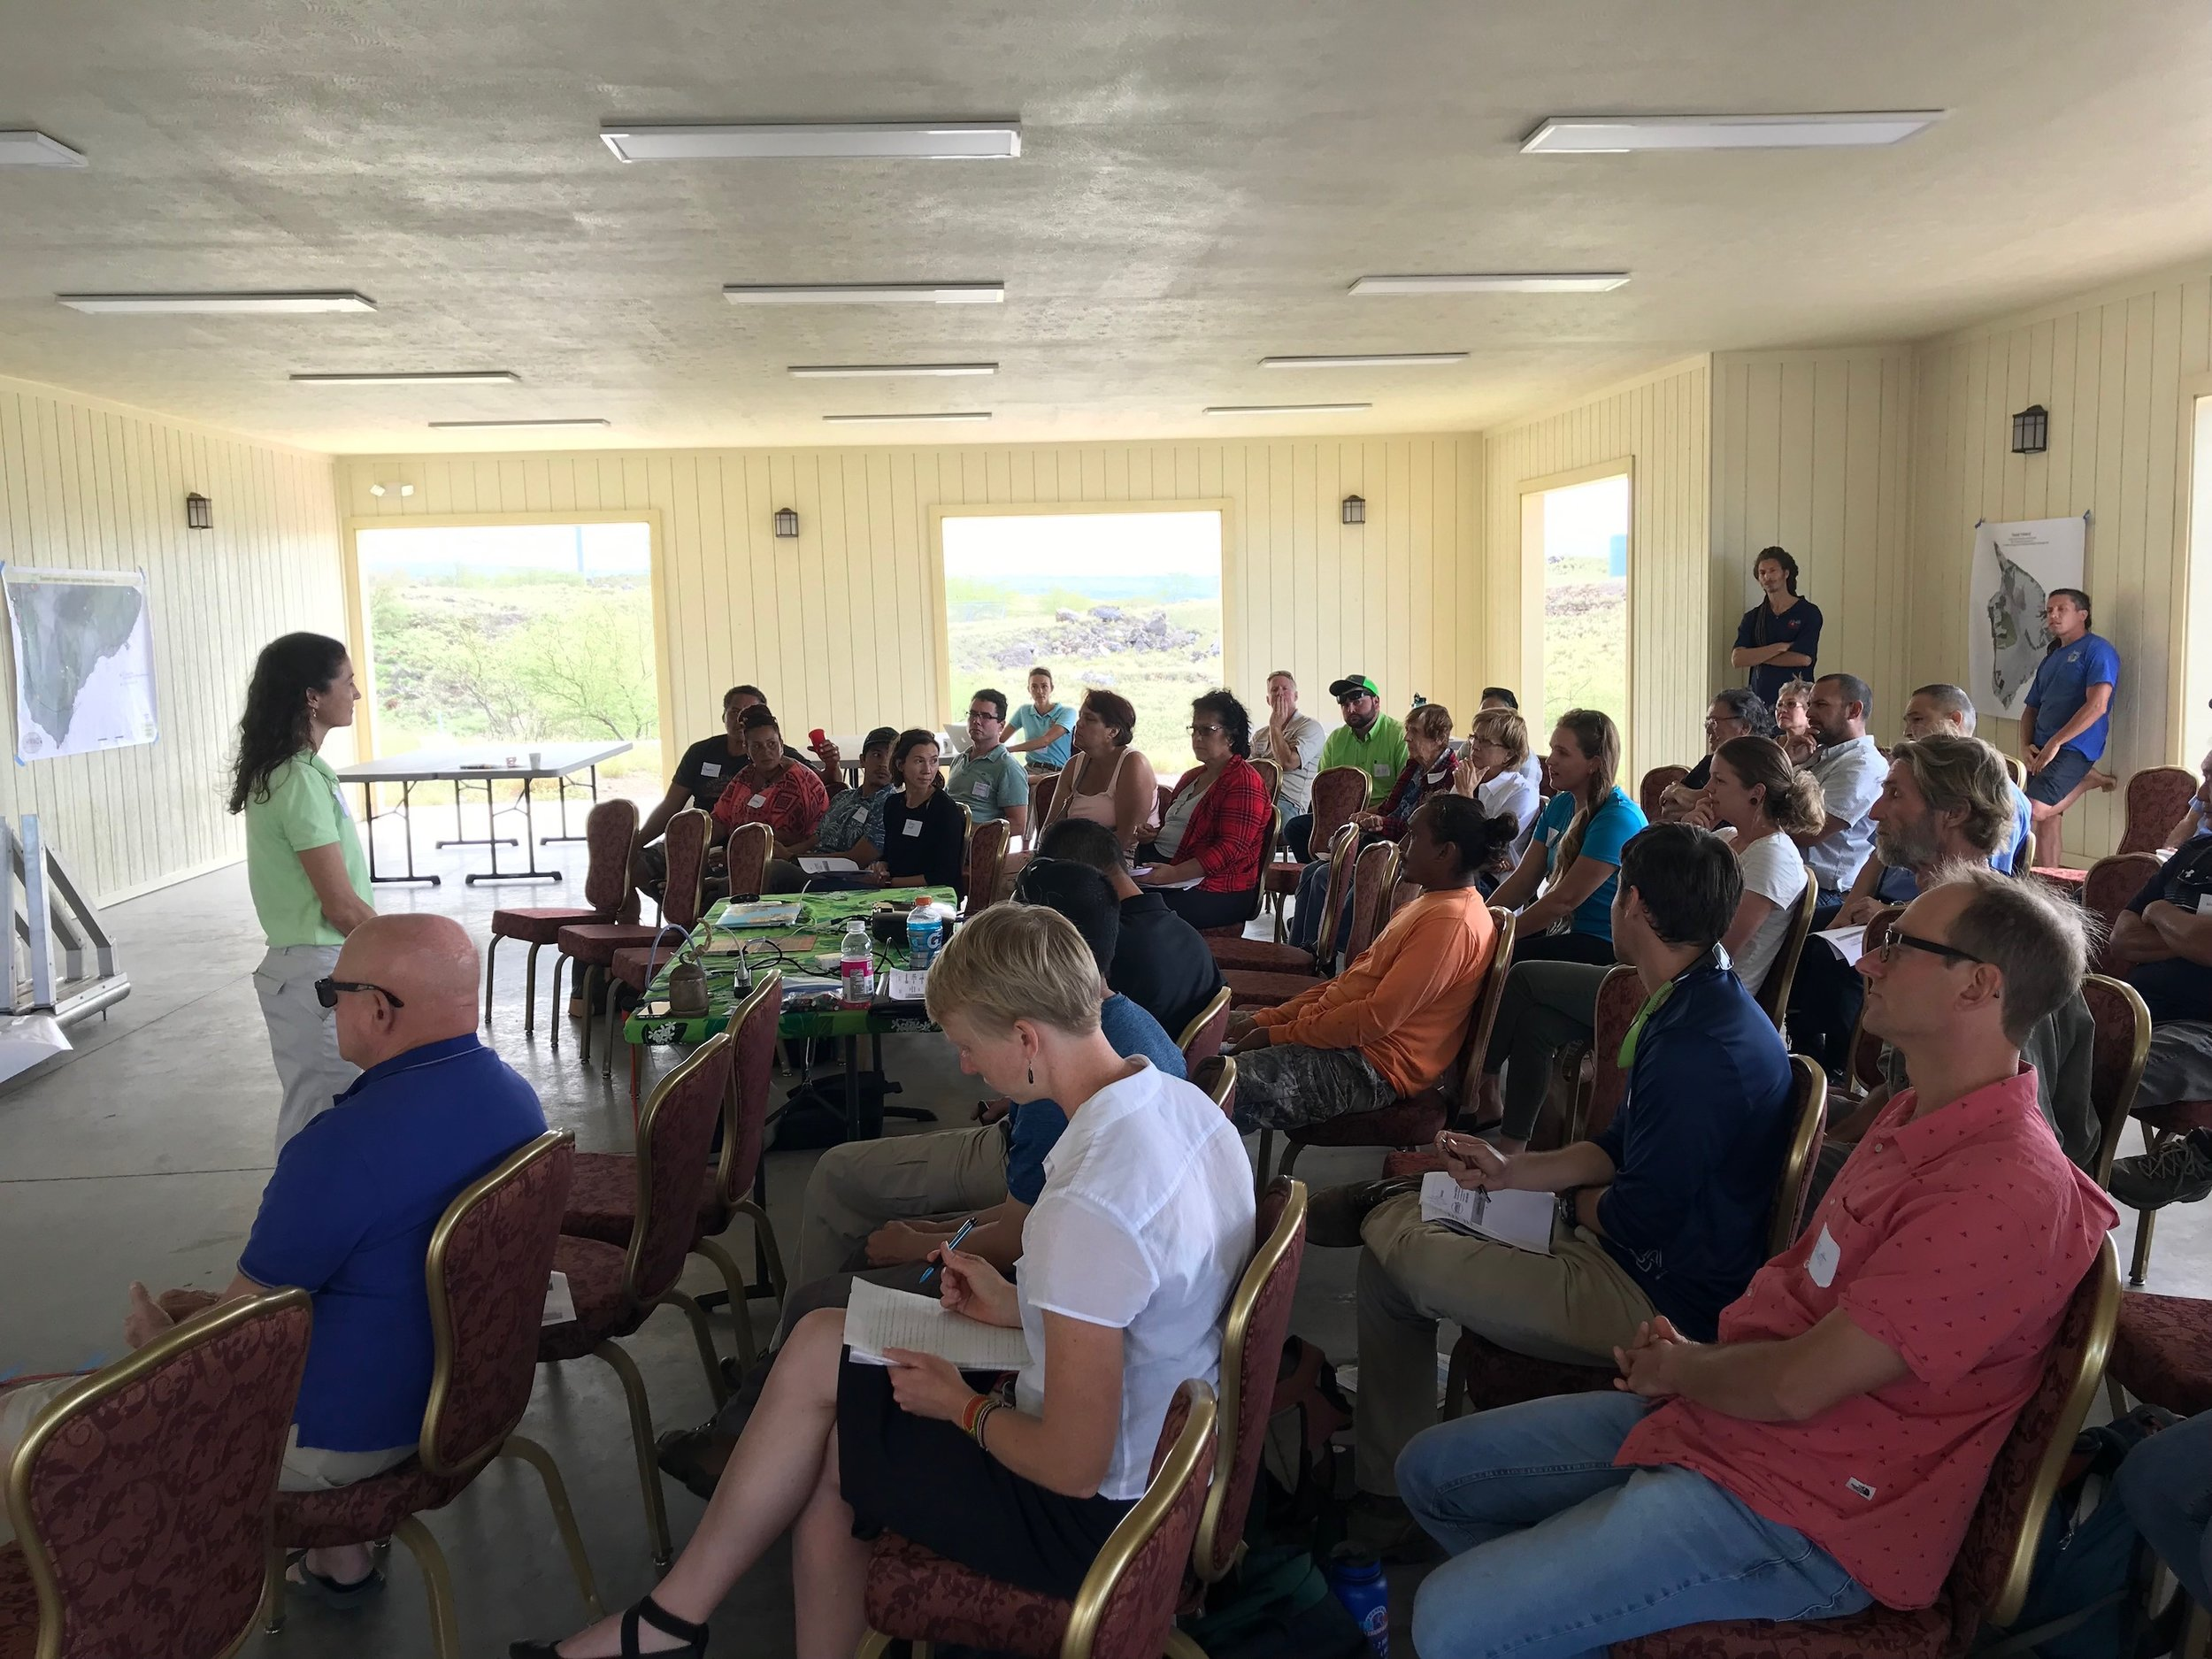 Hawaii Island Kailapa Vegetative Fuels Management Collaborative Action Planning Workshop_2_26_2019_68.jpg